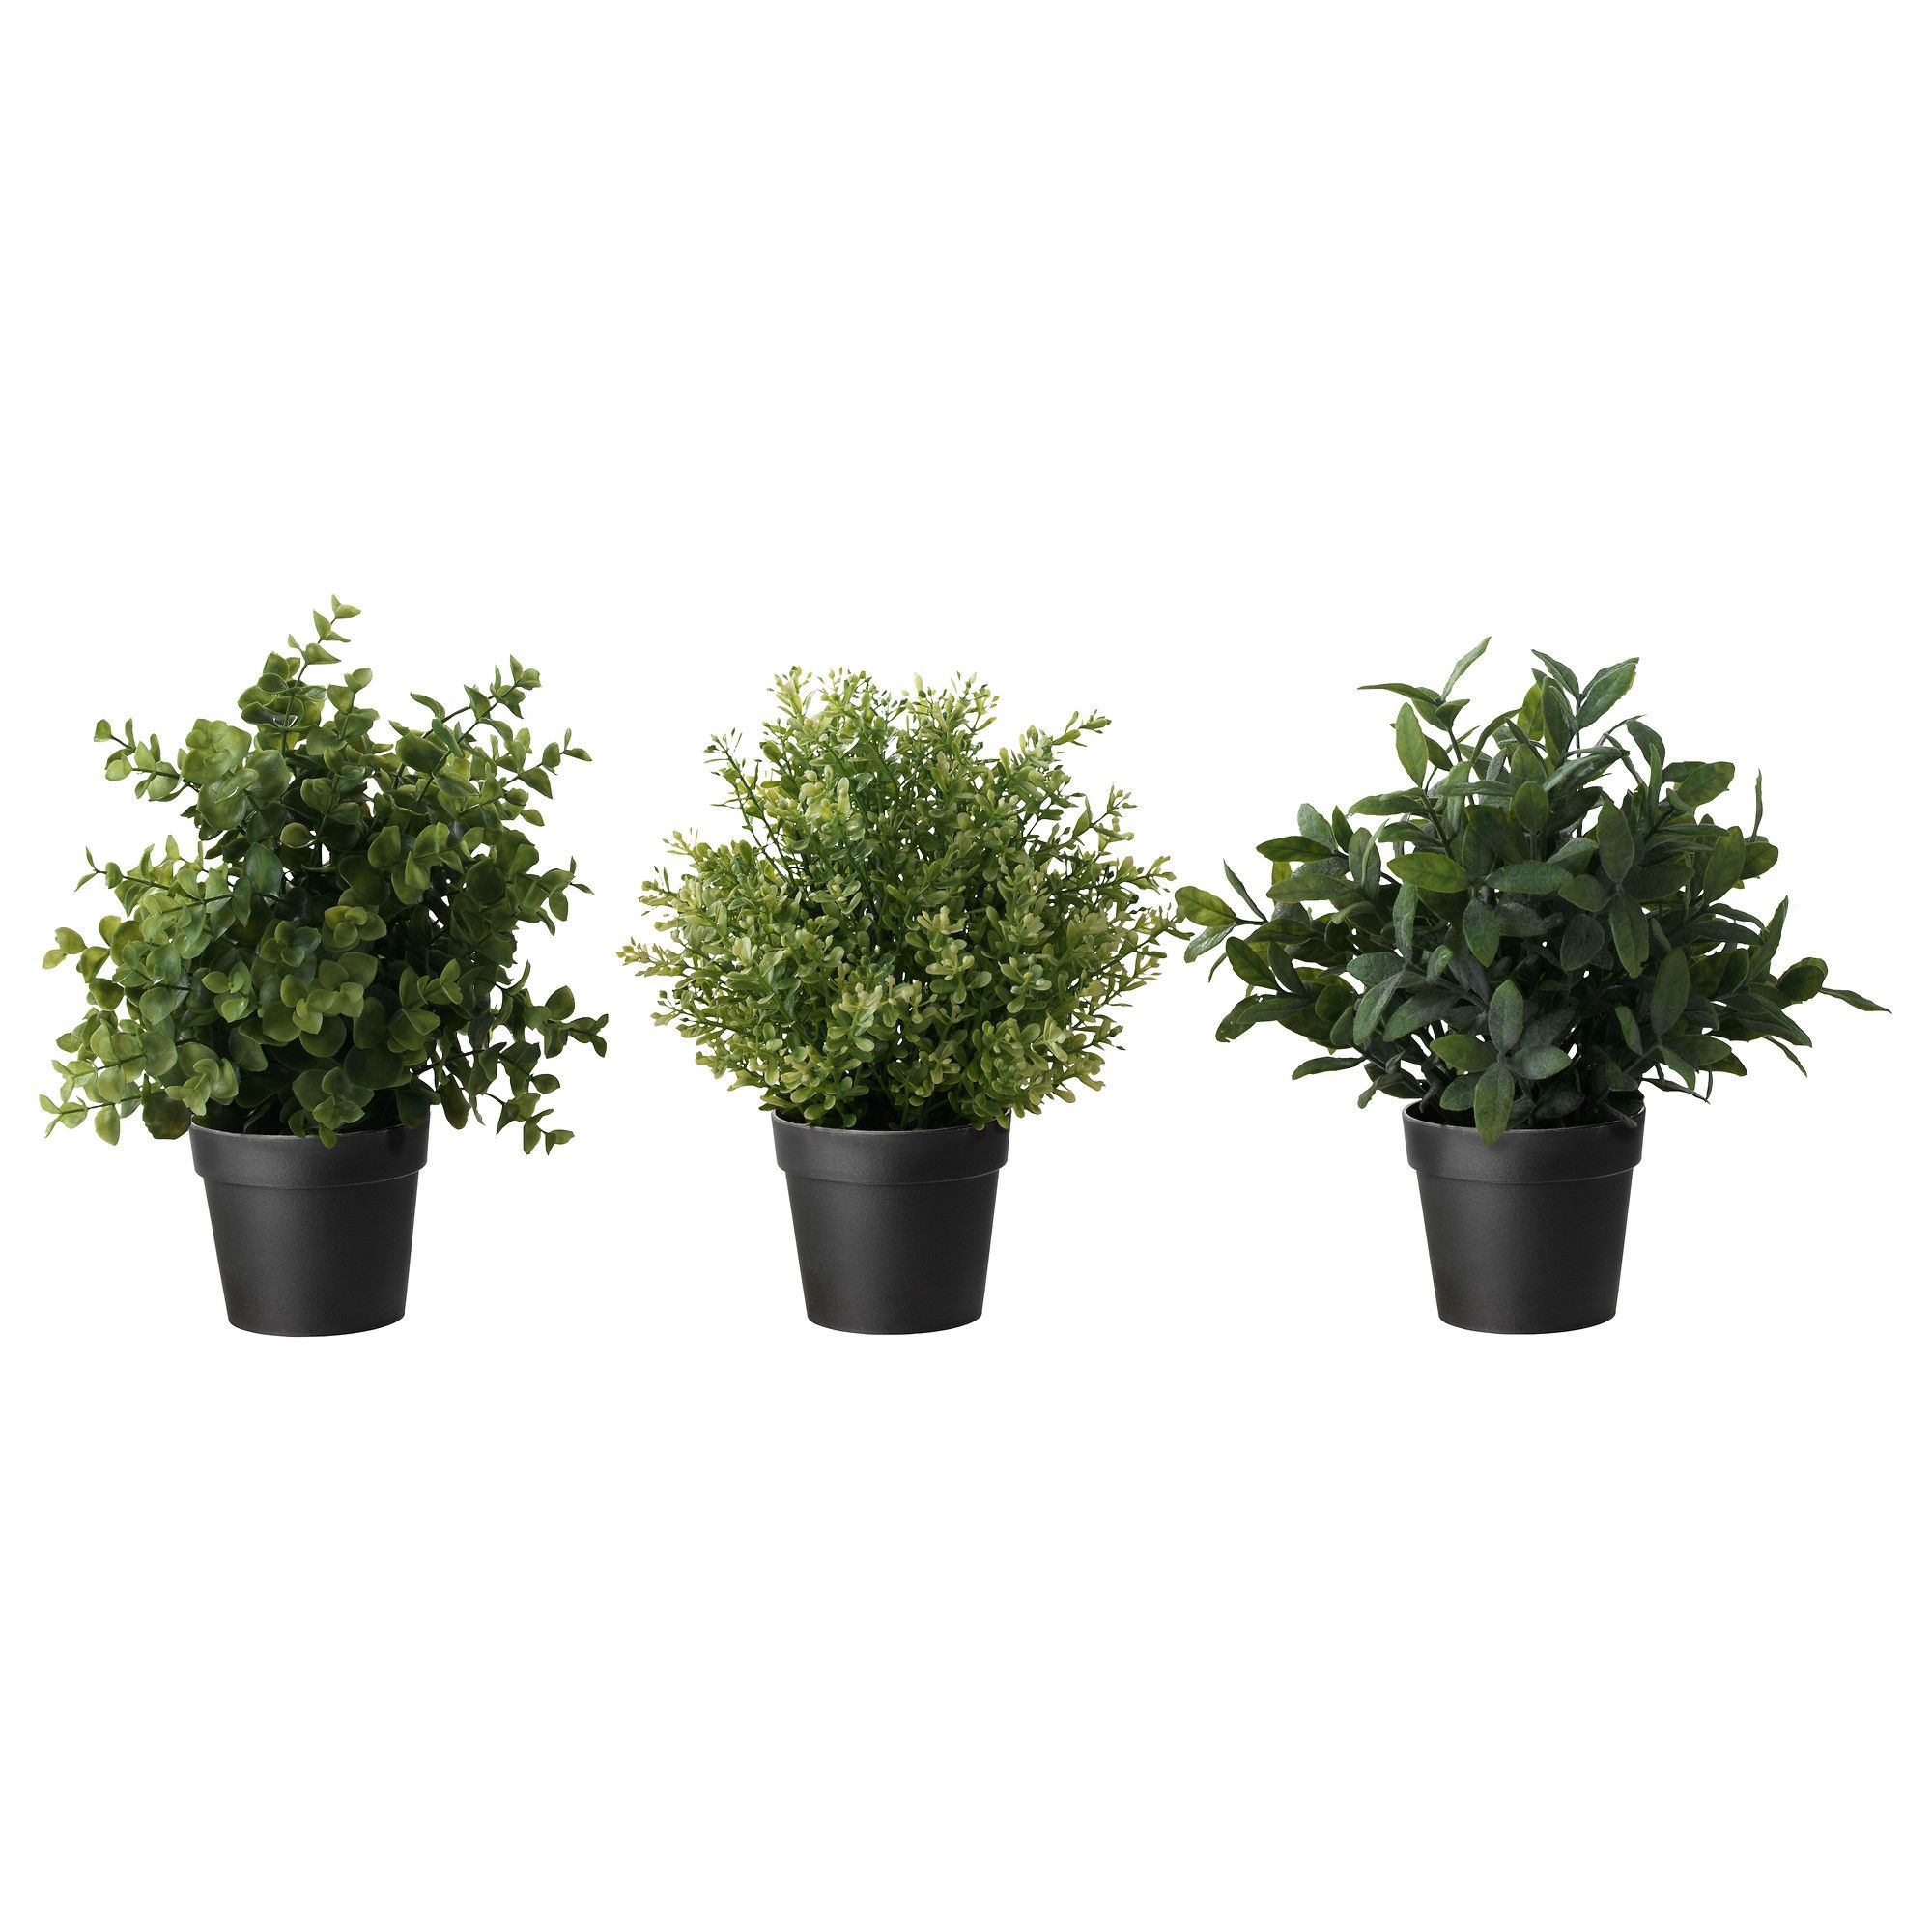 FEJKA Artificial potted plant, herbs, assorted species